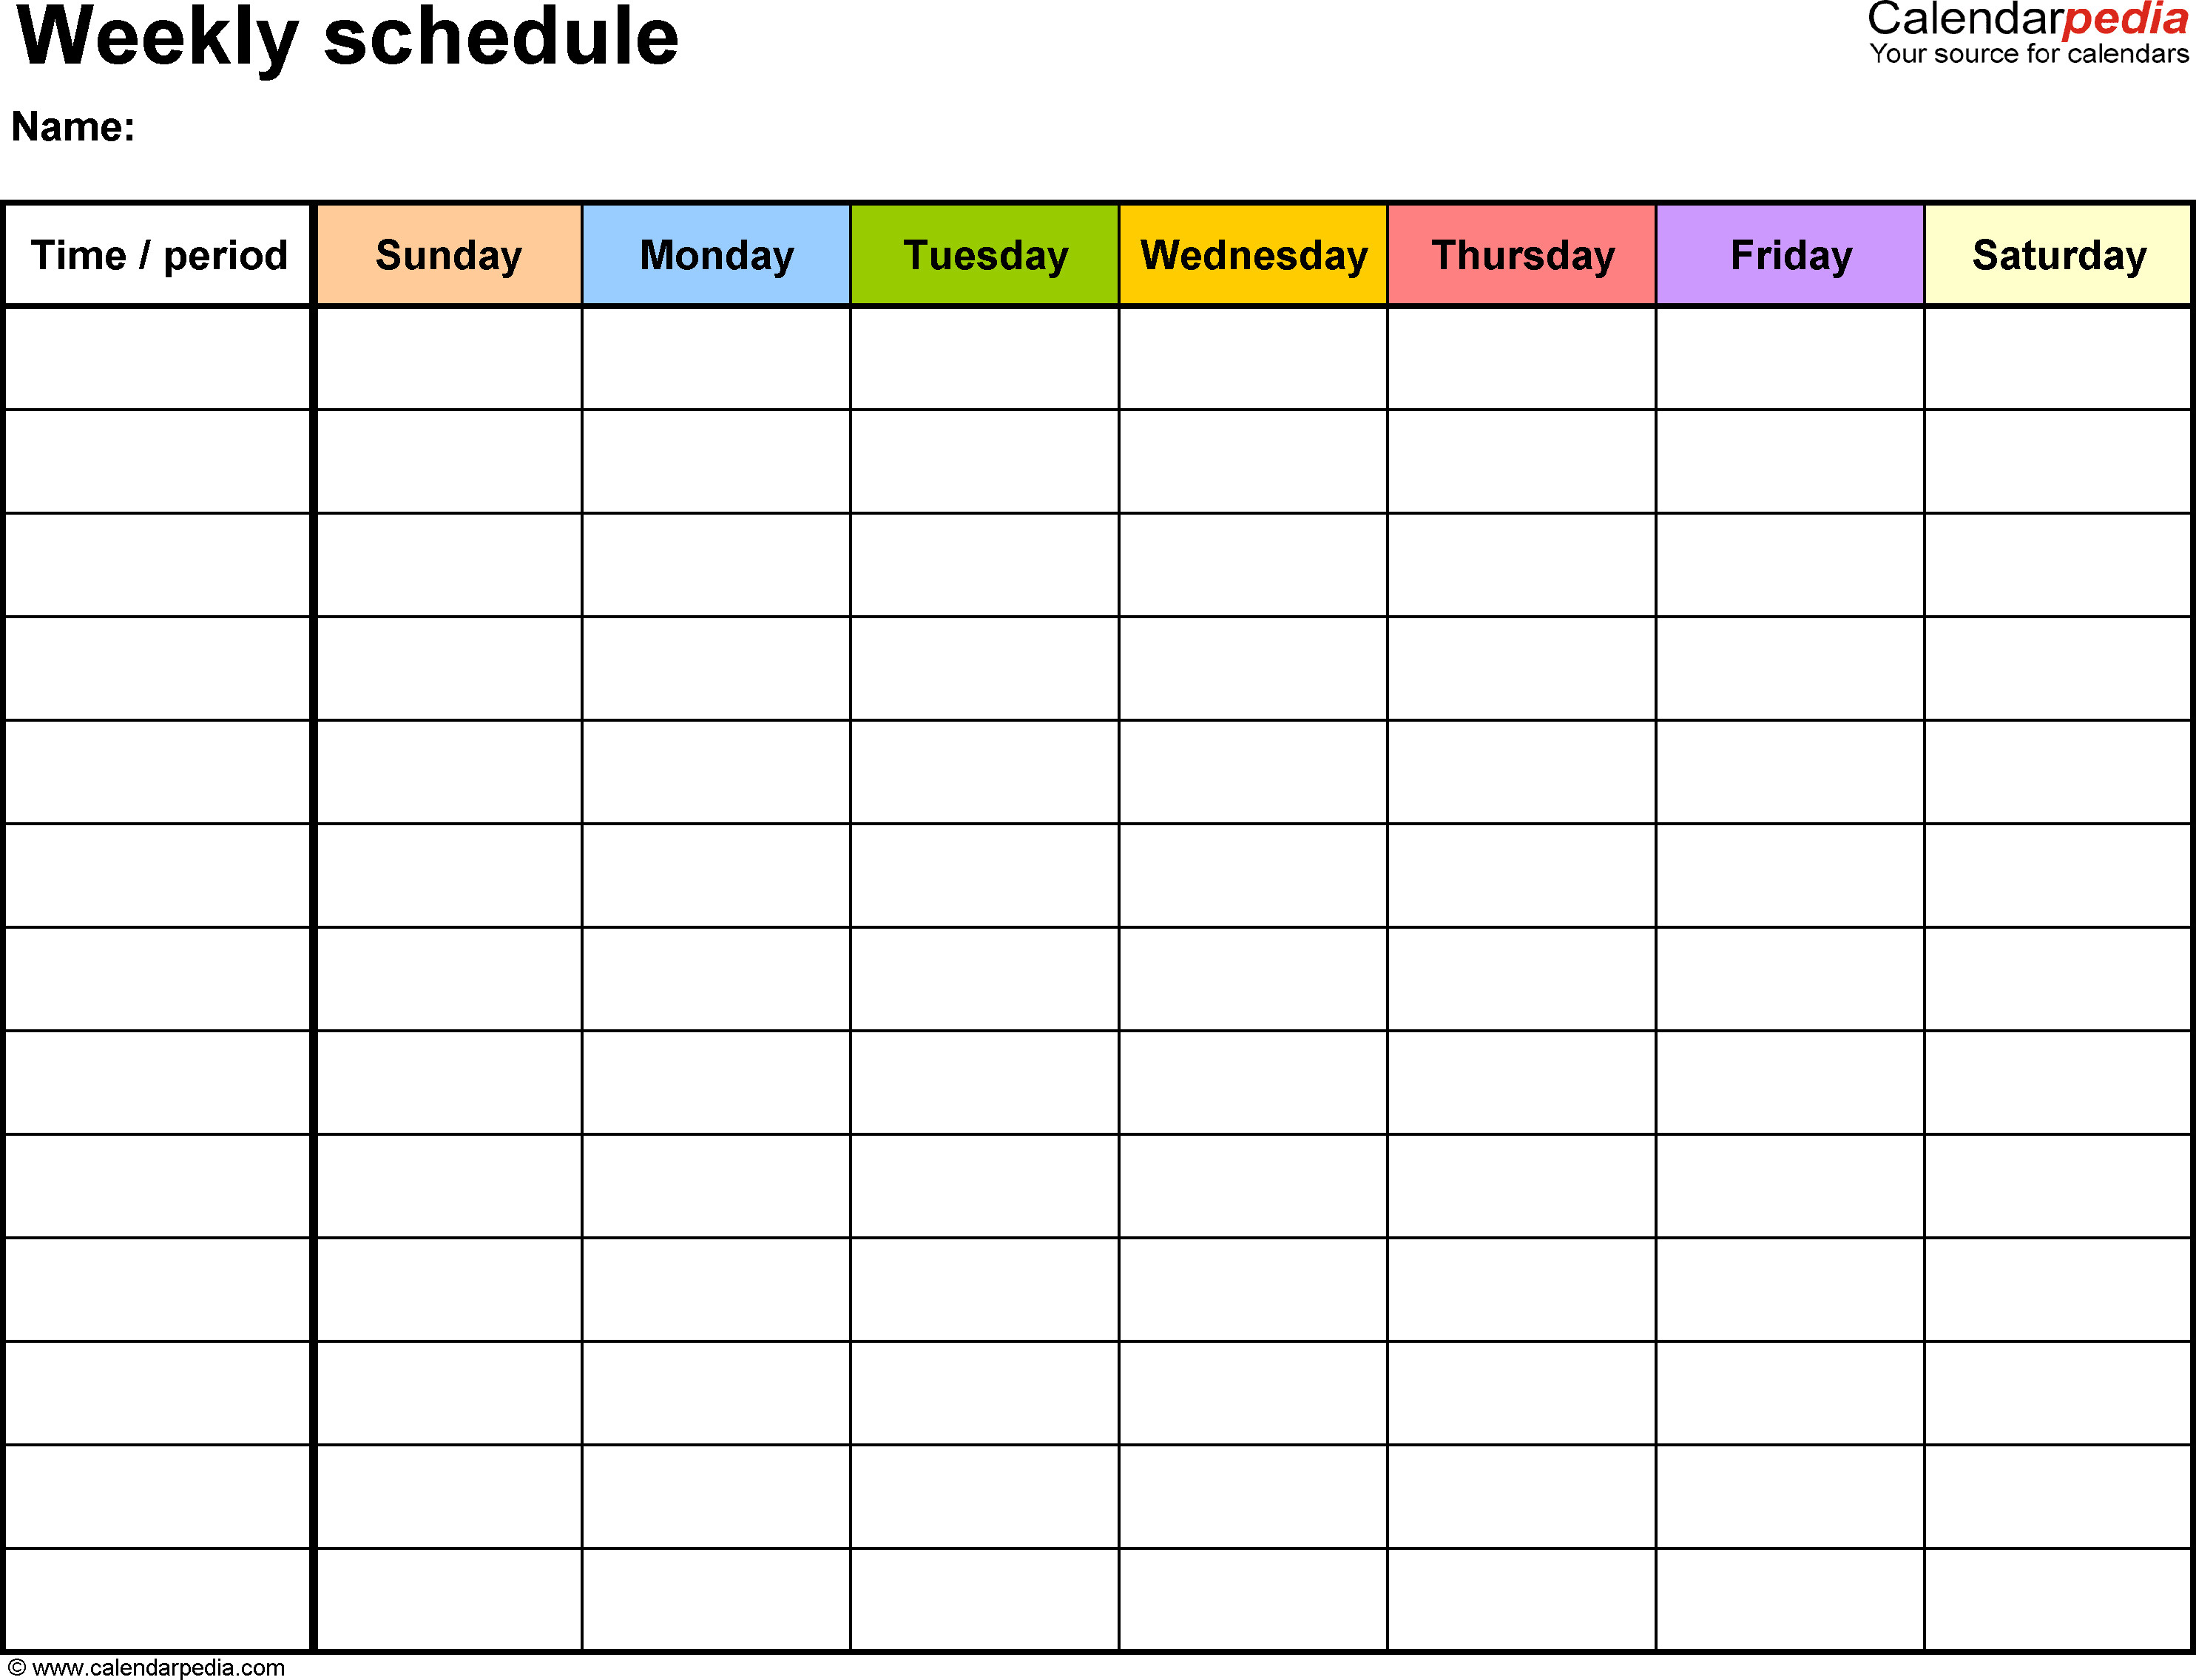 Monthly Schedule Template Excel Free Weekly Schedule Templates for Excel 18 Templates